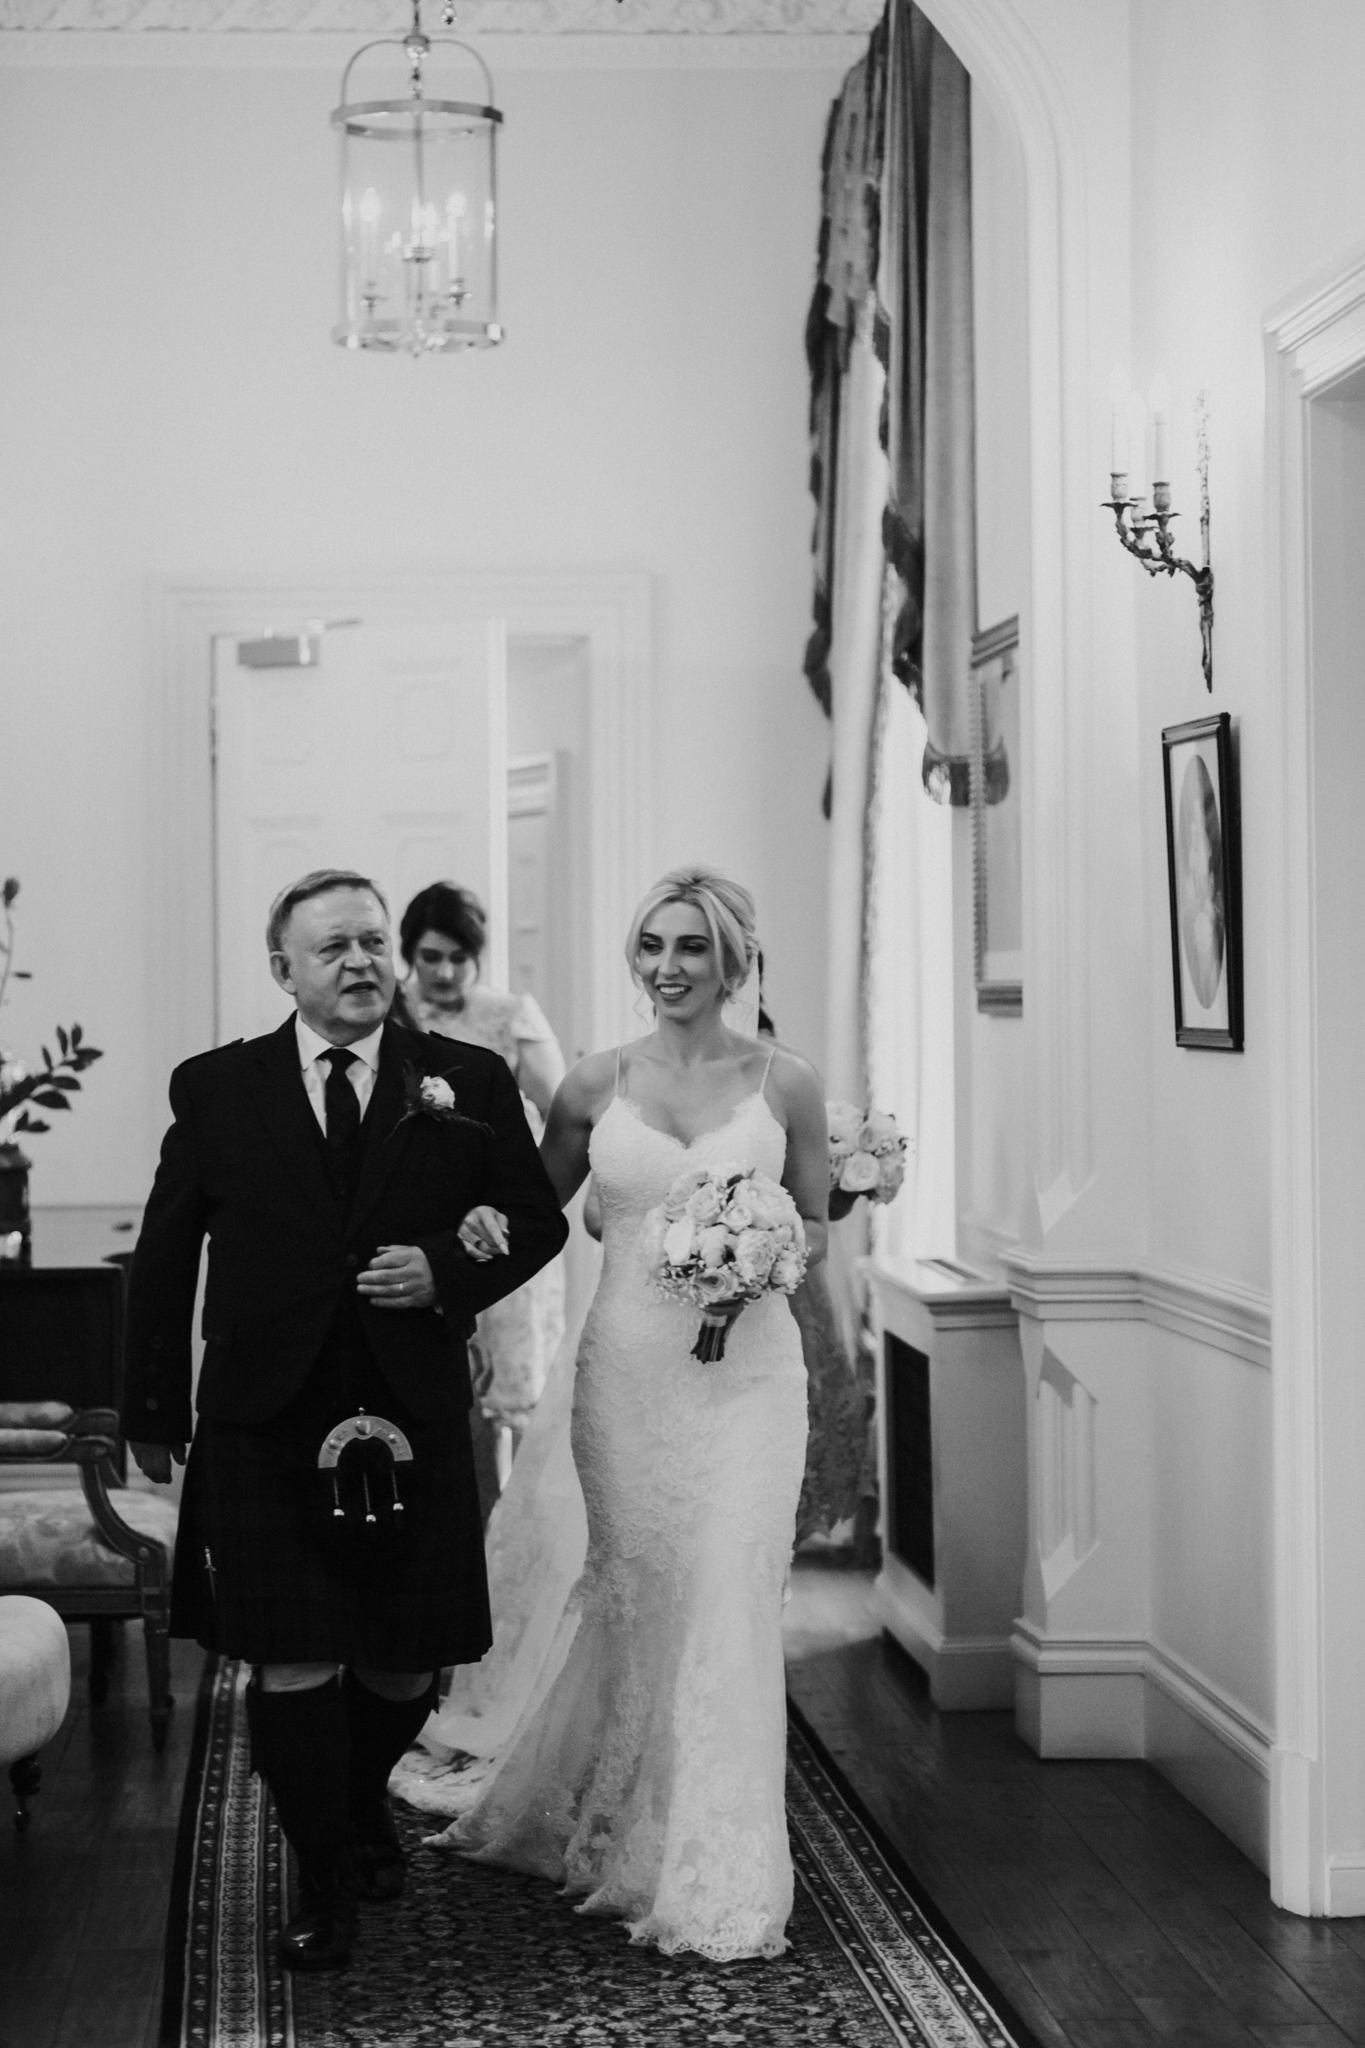 The bride is walking with her father to the ceremony room at the Crossbasket castle